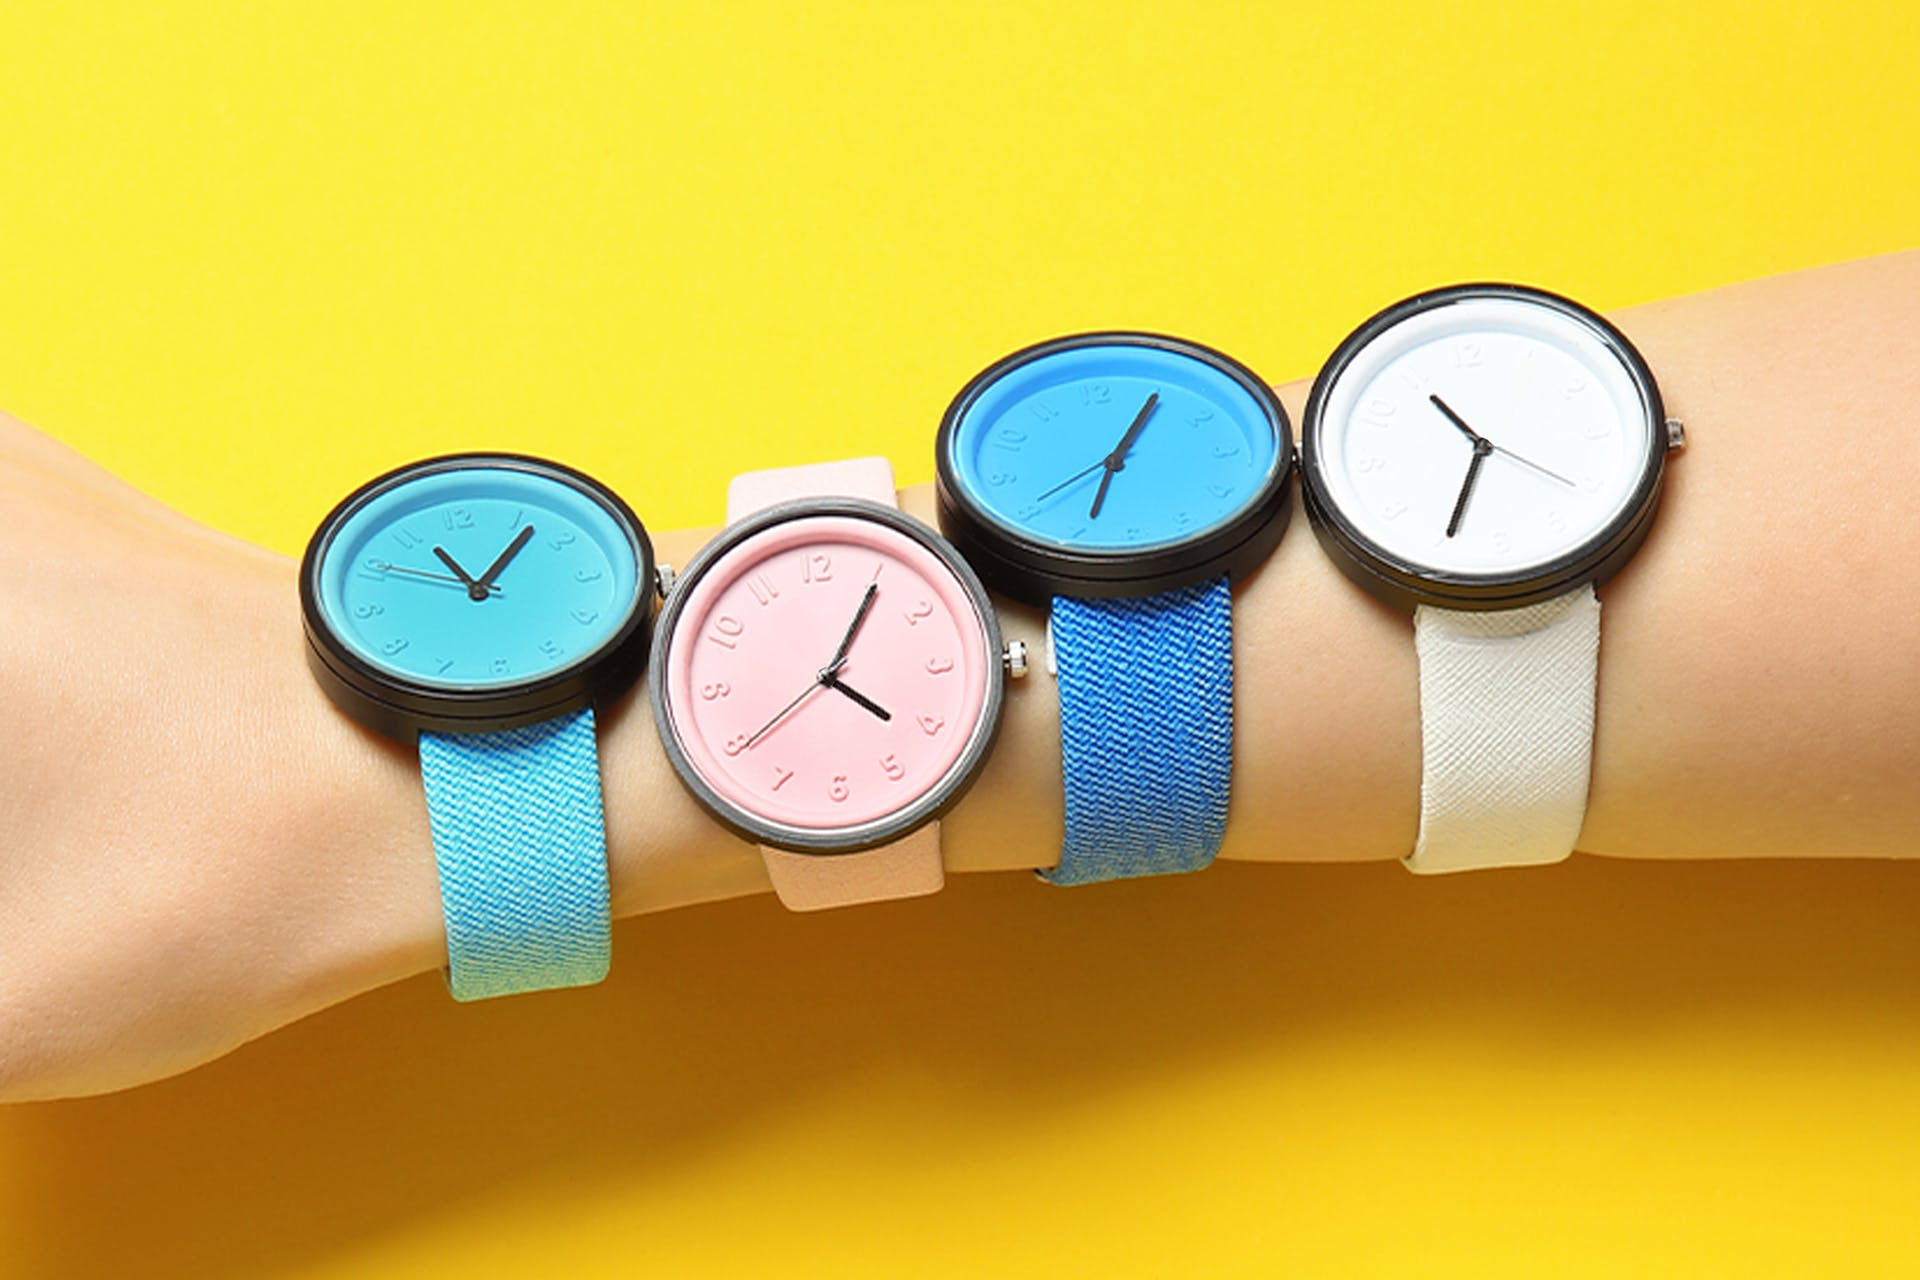 Person wearing multiple watches for different time zones on bright yellow background. Hero image for social media management blog post.